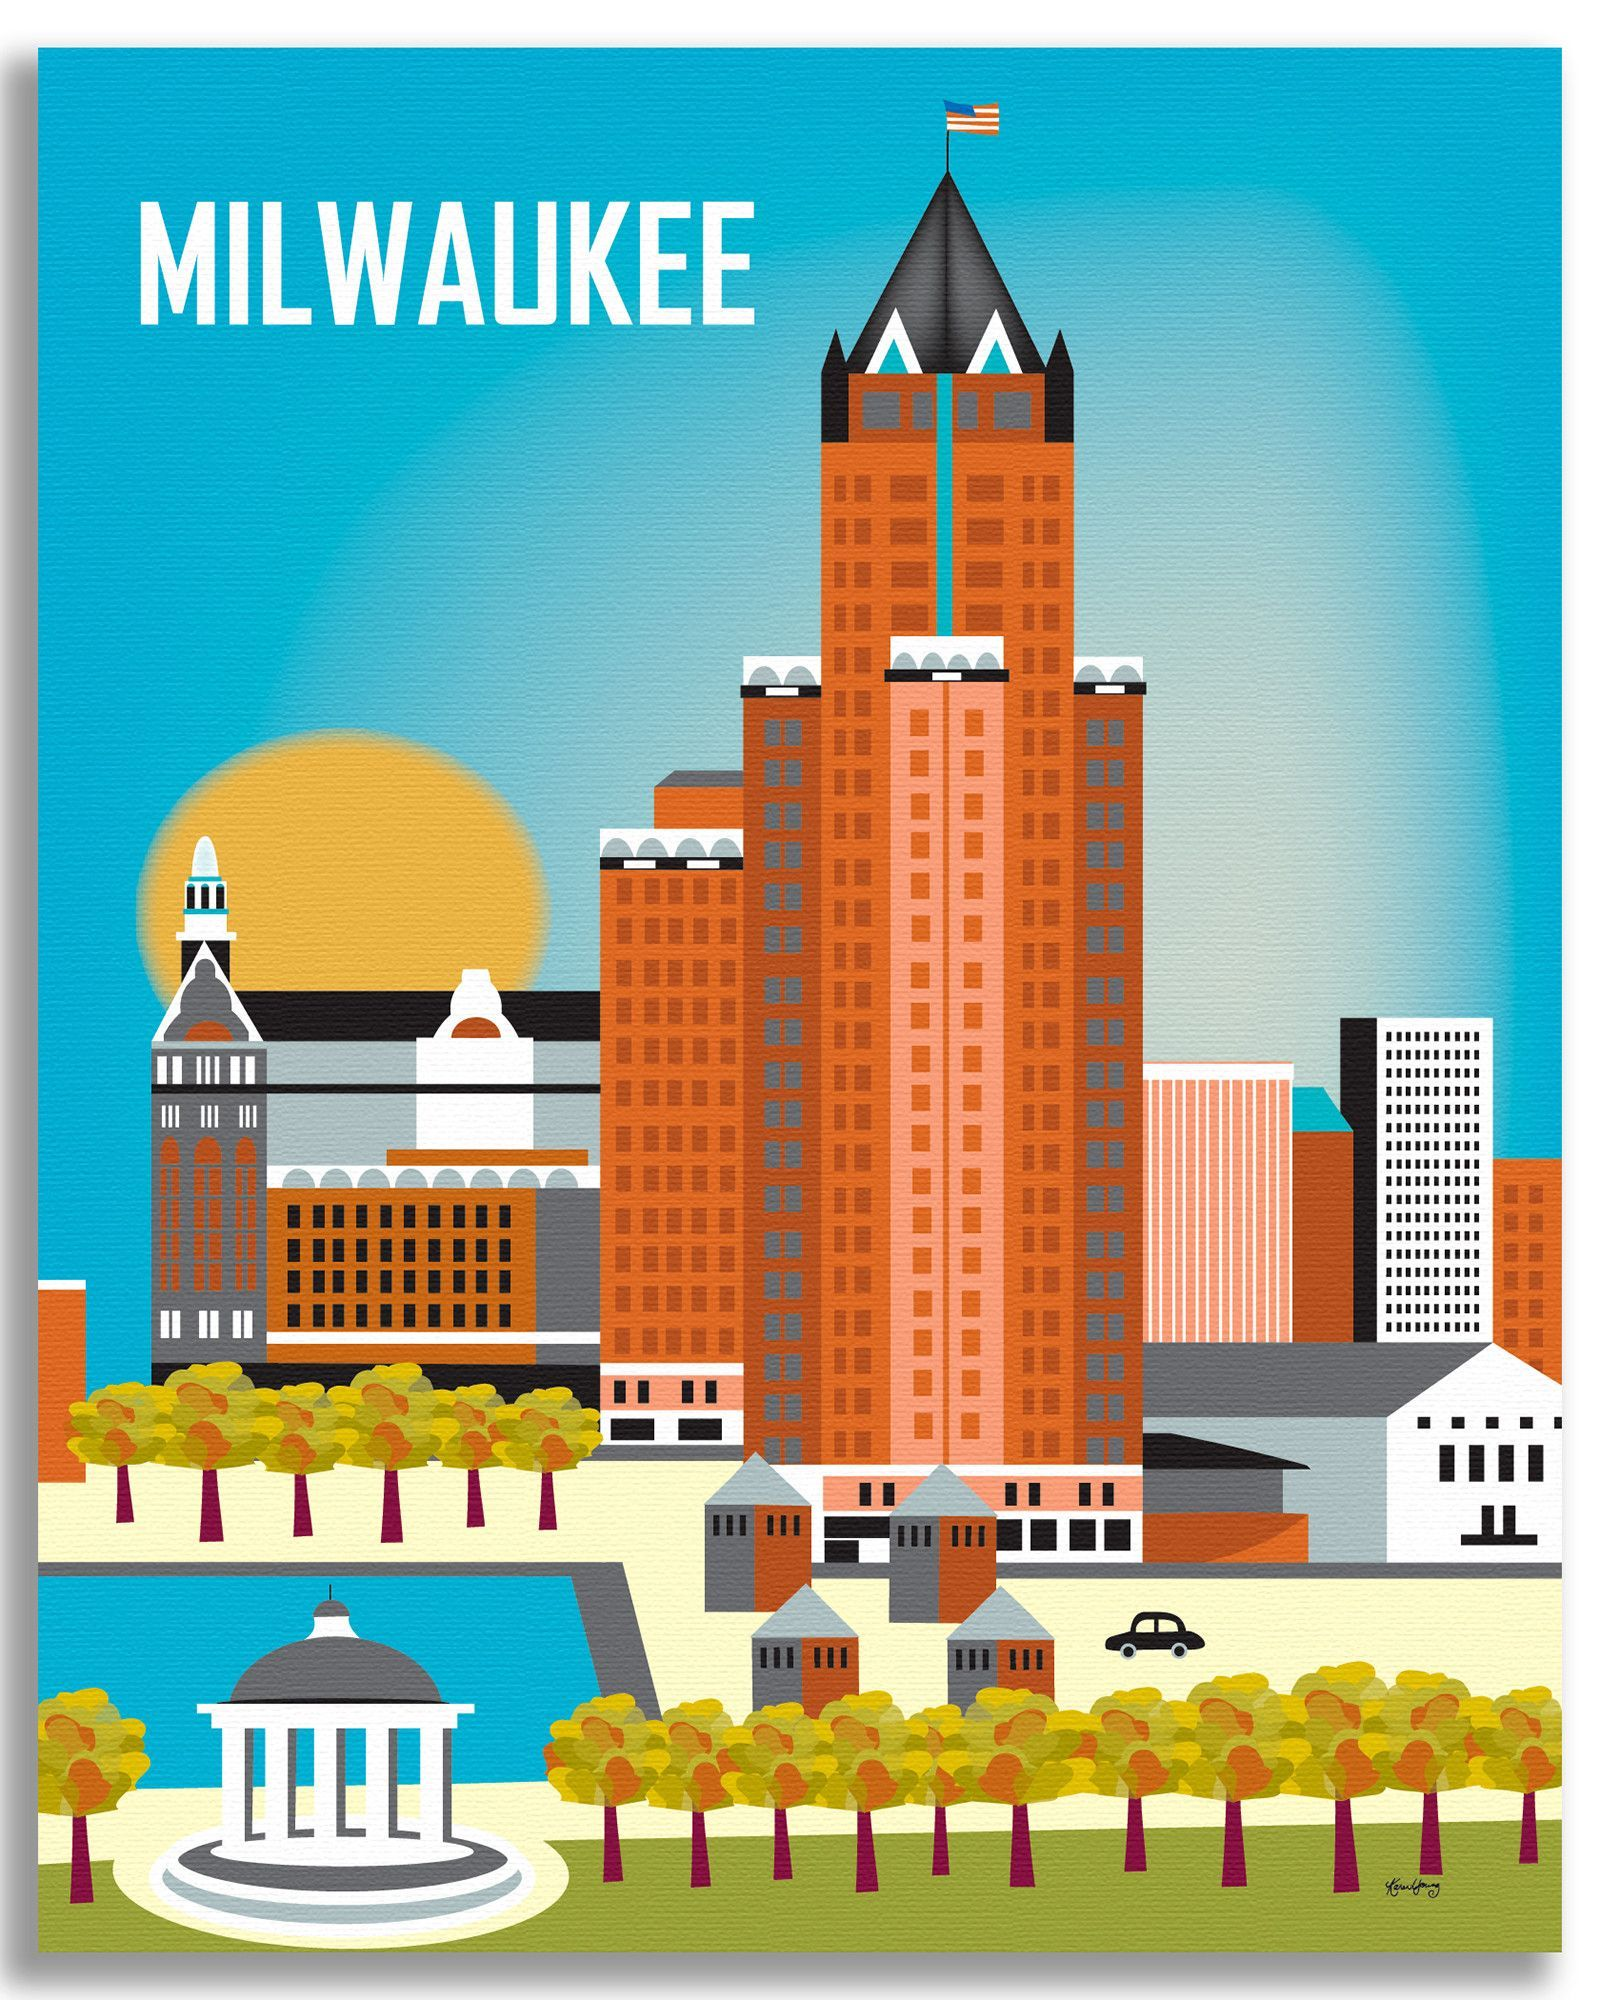 Milwaukee wisconsin wisconsin travel gifts and travel posters milwaukee wisconsin aiddatafo Images